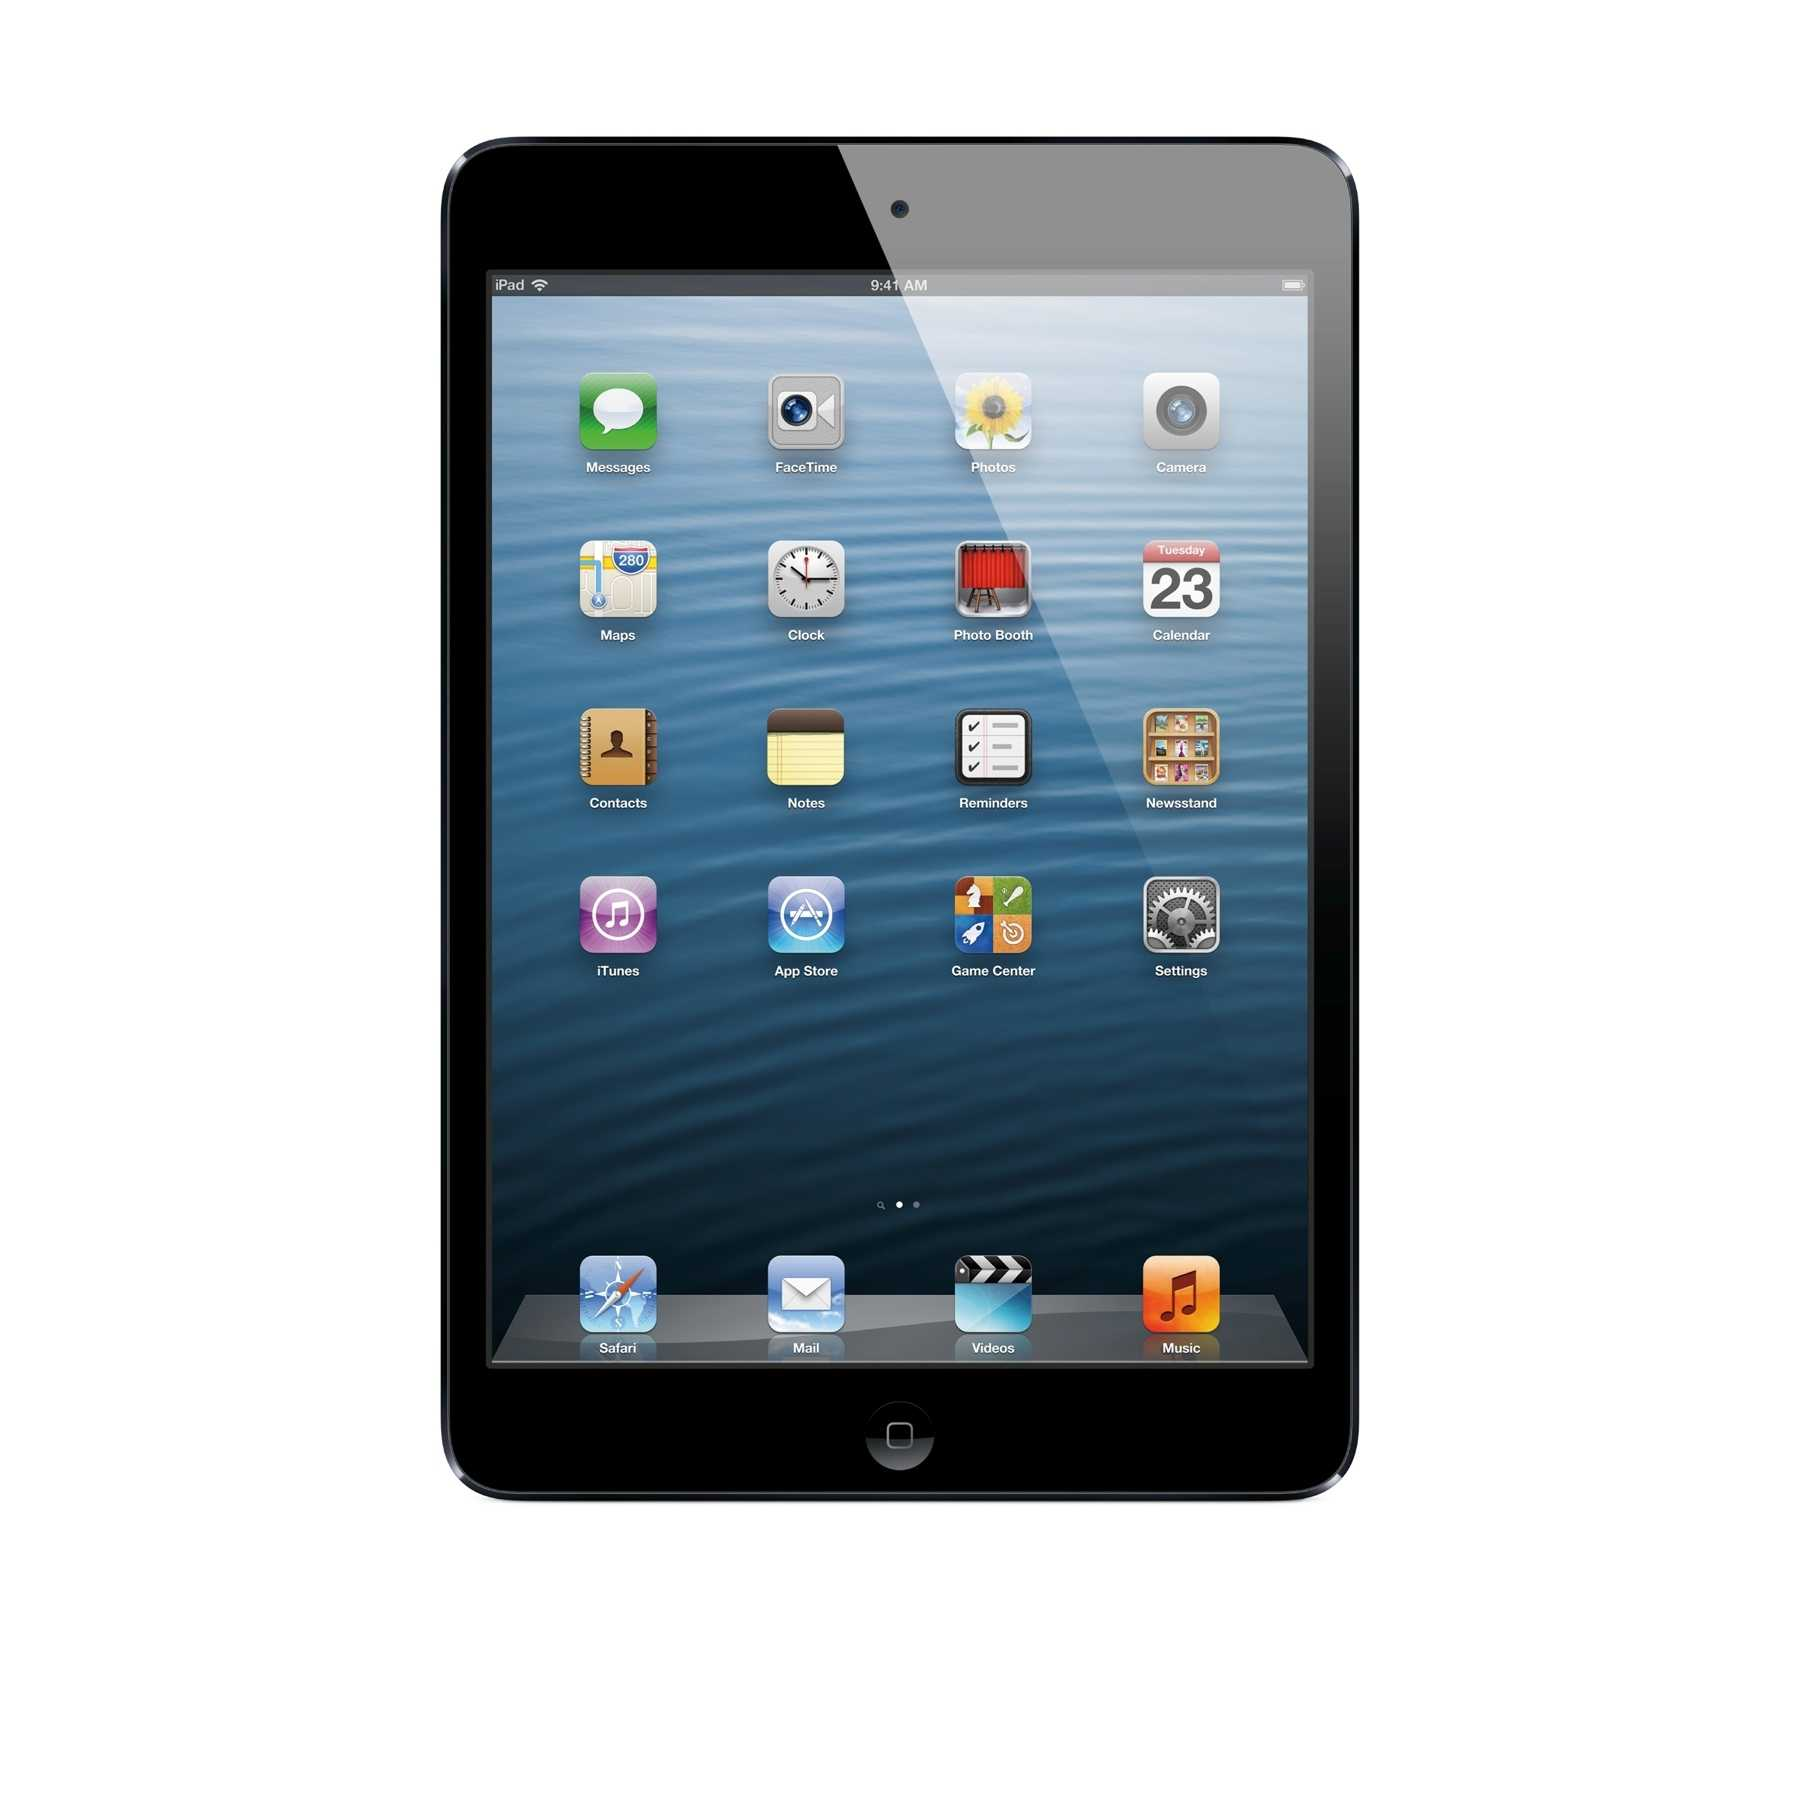 Apple A1432 iPad Mini 16 GB 7.9' Multi-Touch Display Multimedia Tablet, Black (Refurbished)